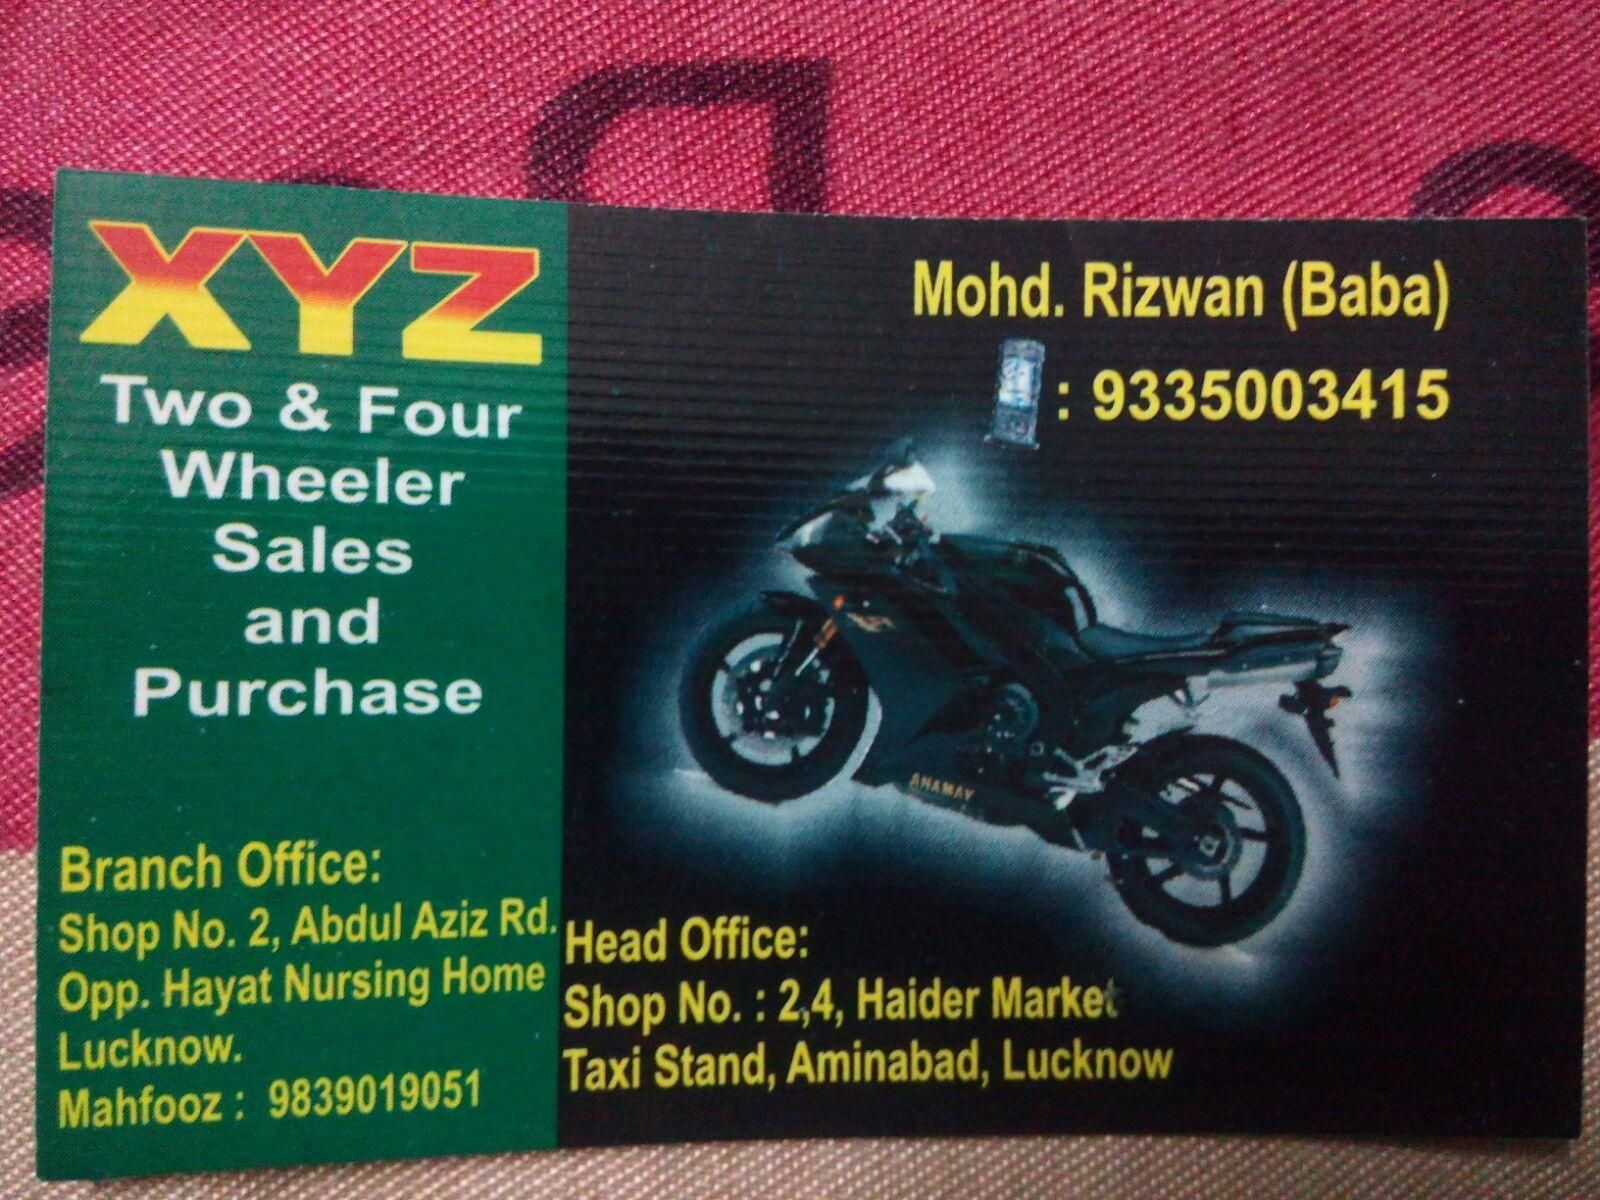 xyz two & four wheeler sales and purchase